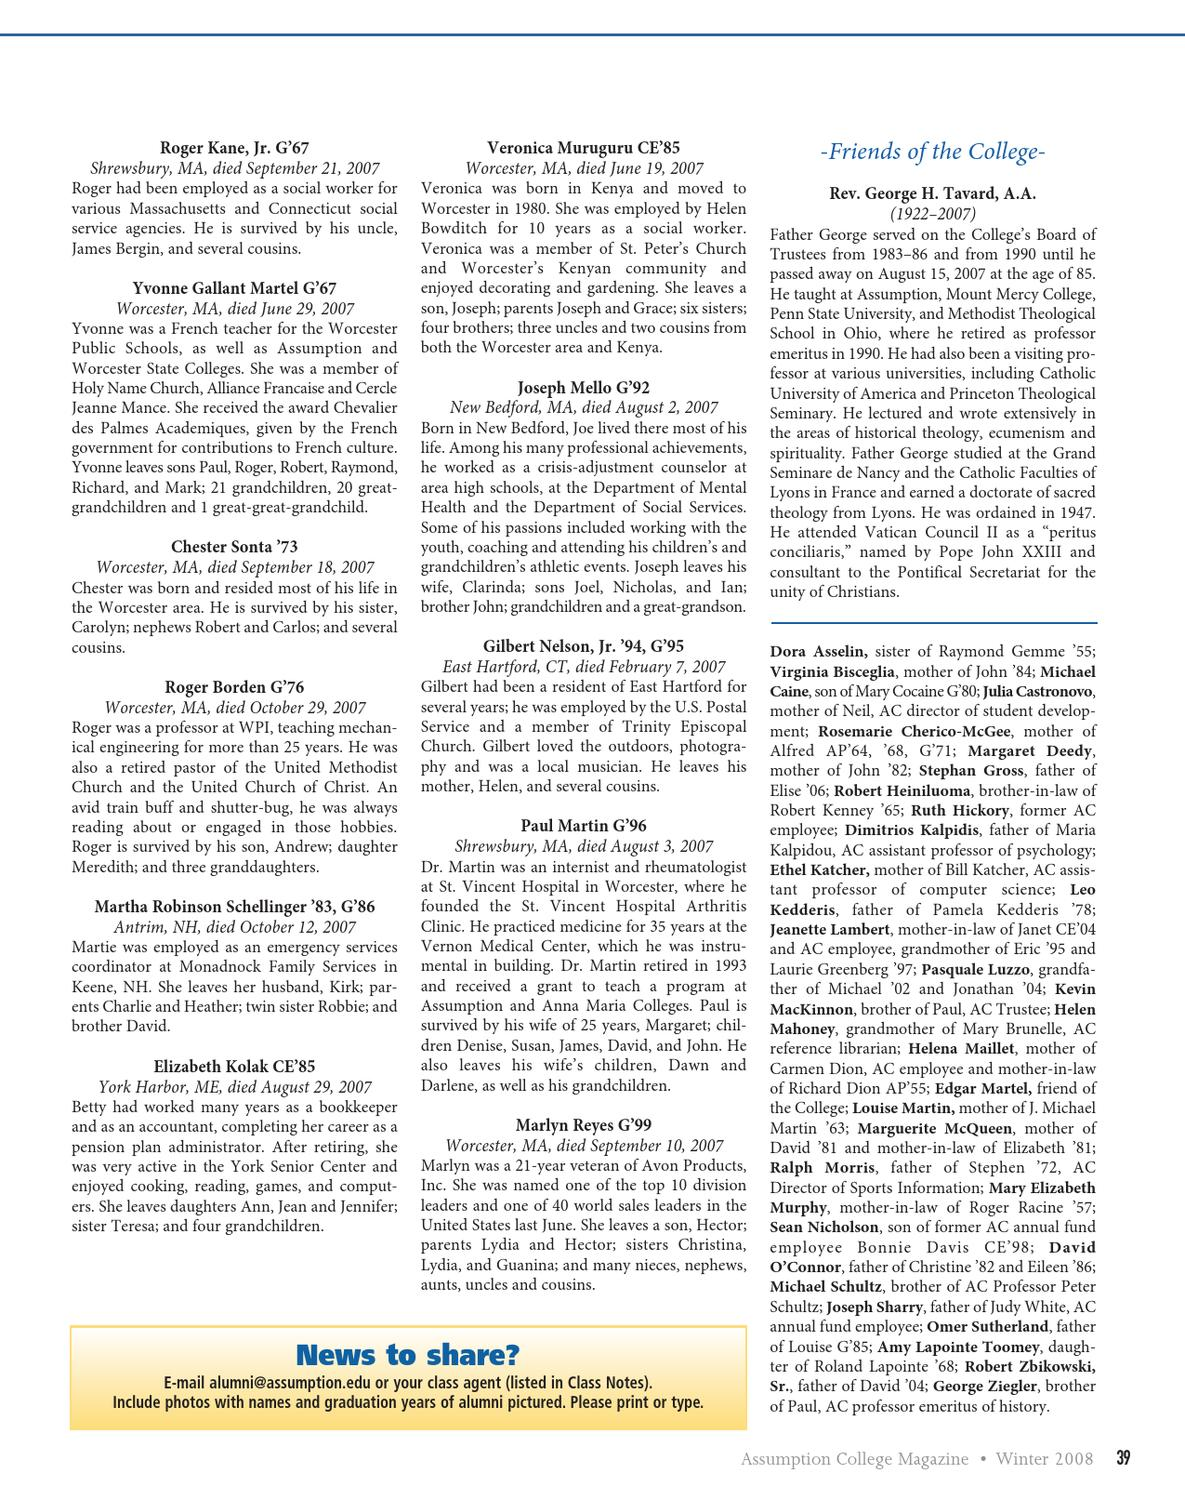 ACMag_Winter2008 by Assumption College - issuu